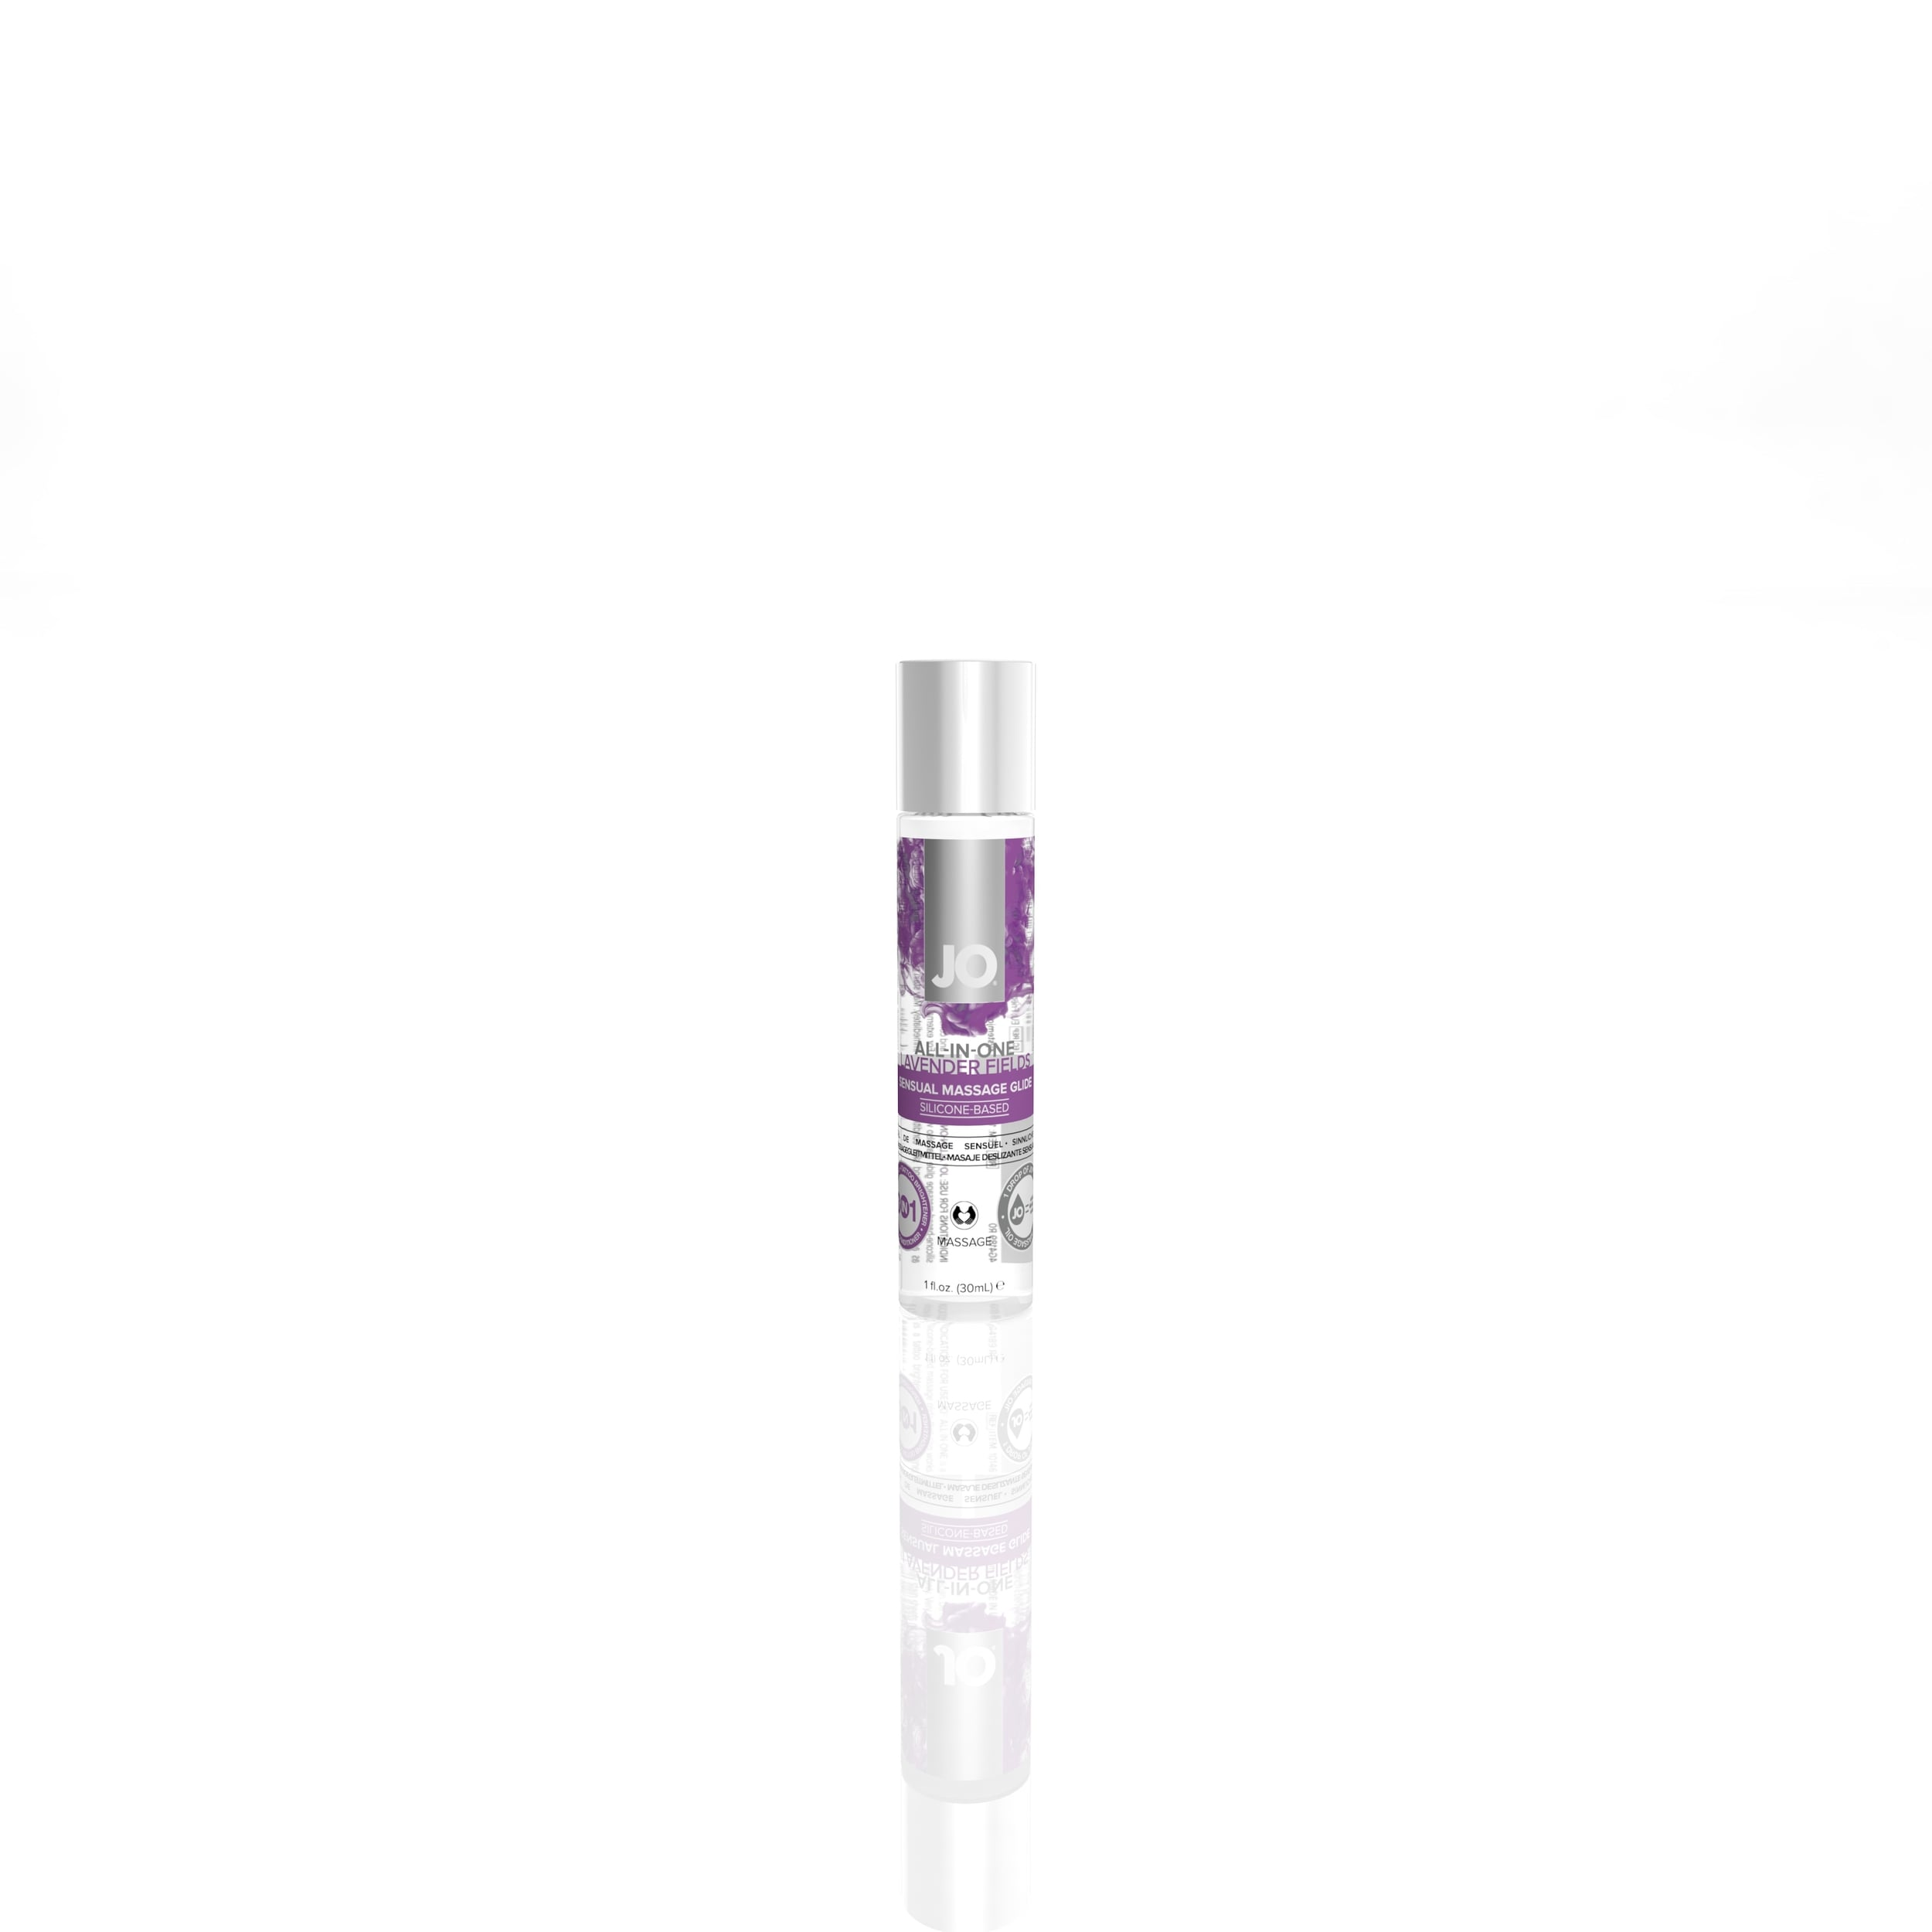 10146 - JO ALL-IN-ONE MASSAGE GLIDE - 1fl.oz 30mL (MOQ 12 units - Includes Counter Display) - LAVENDER.jpg